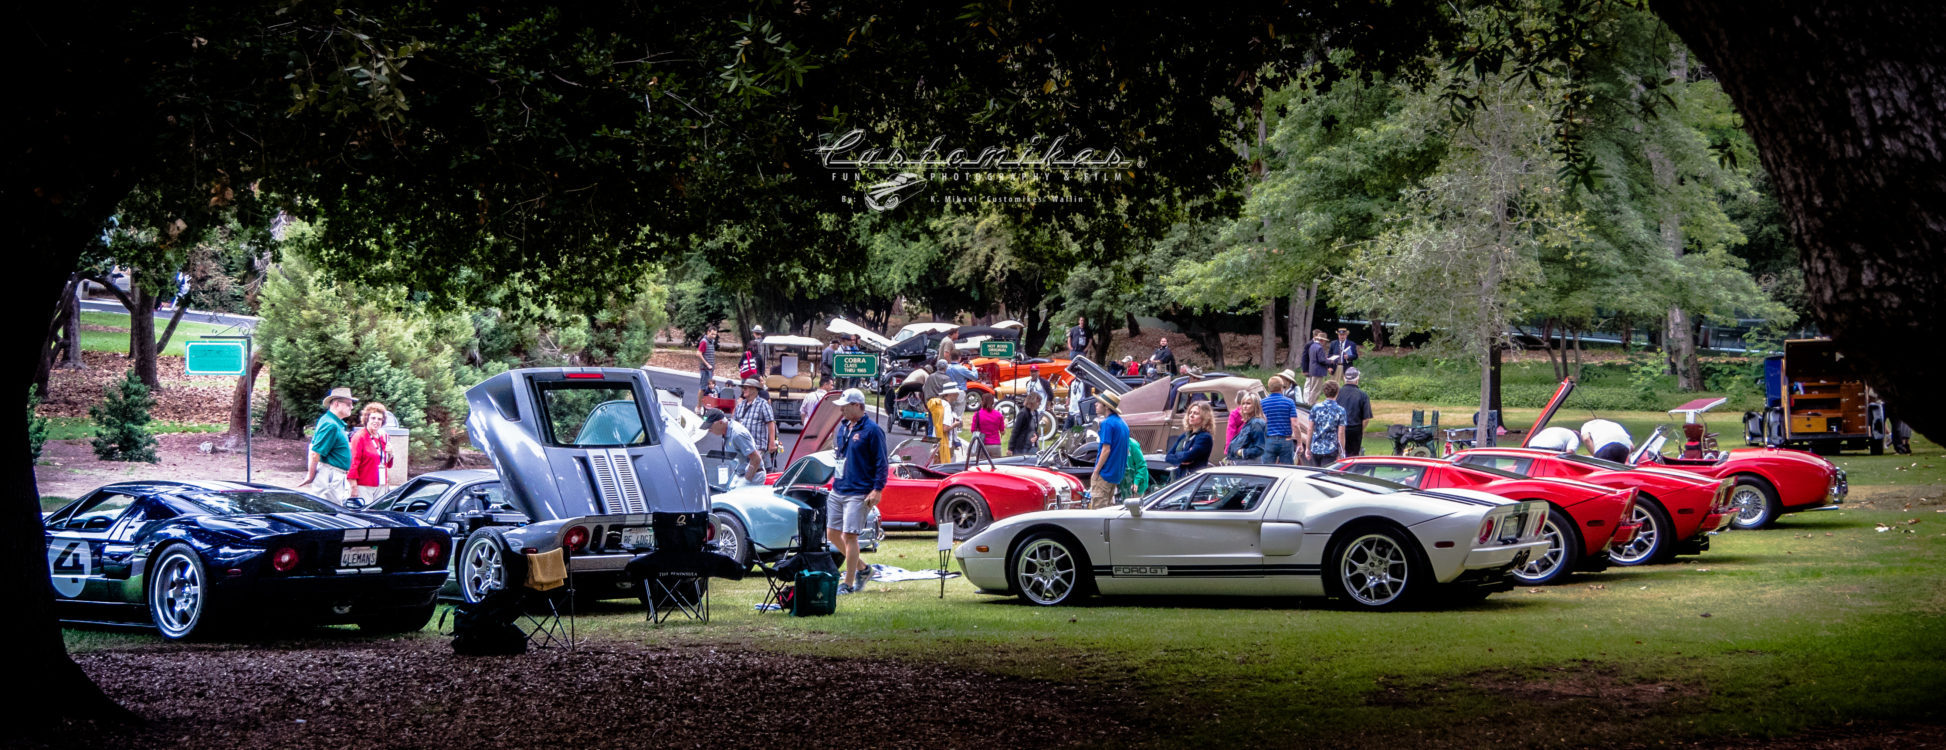 GT_40, ford, ac bristol, ac cobra, shelby, ford SVO, svo, outstanding, group of GT-40's, classic, SMMC, Lacy Park, San Marino Motor Classic